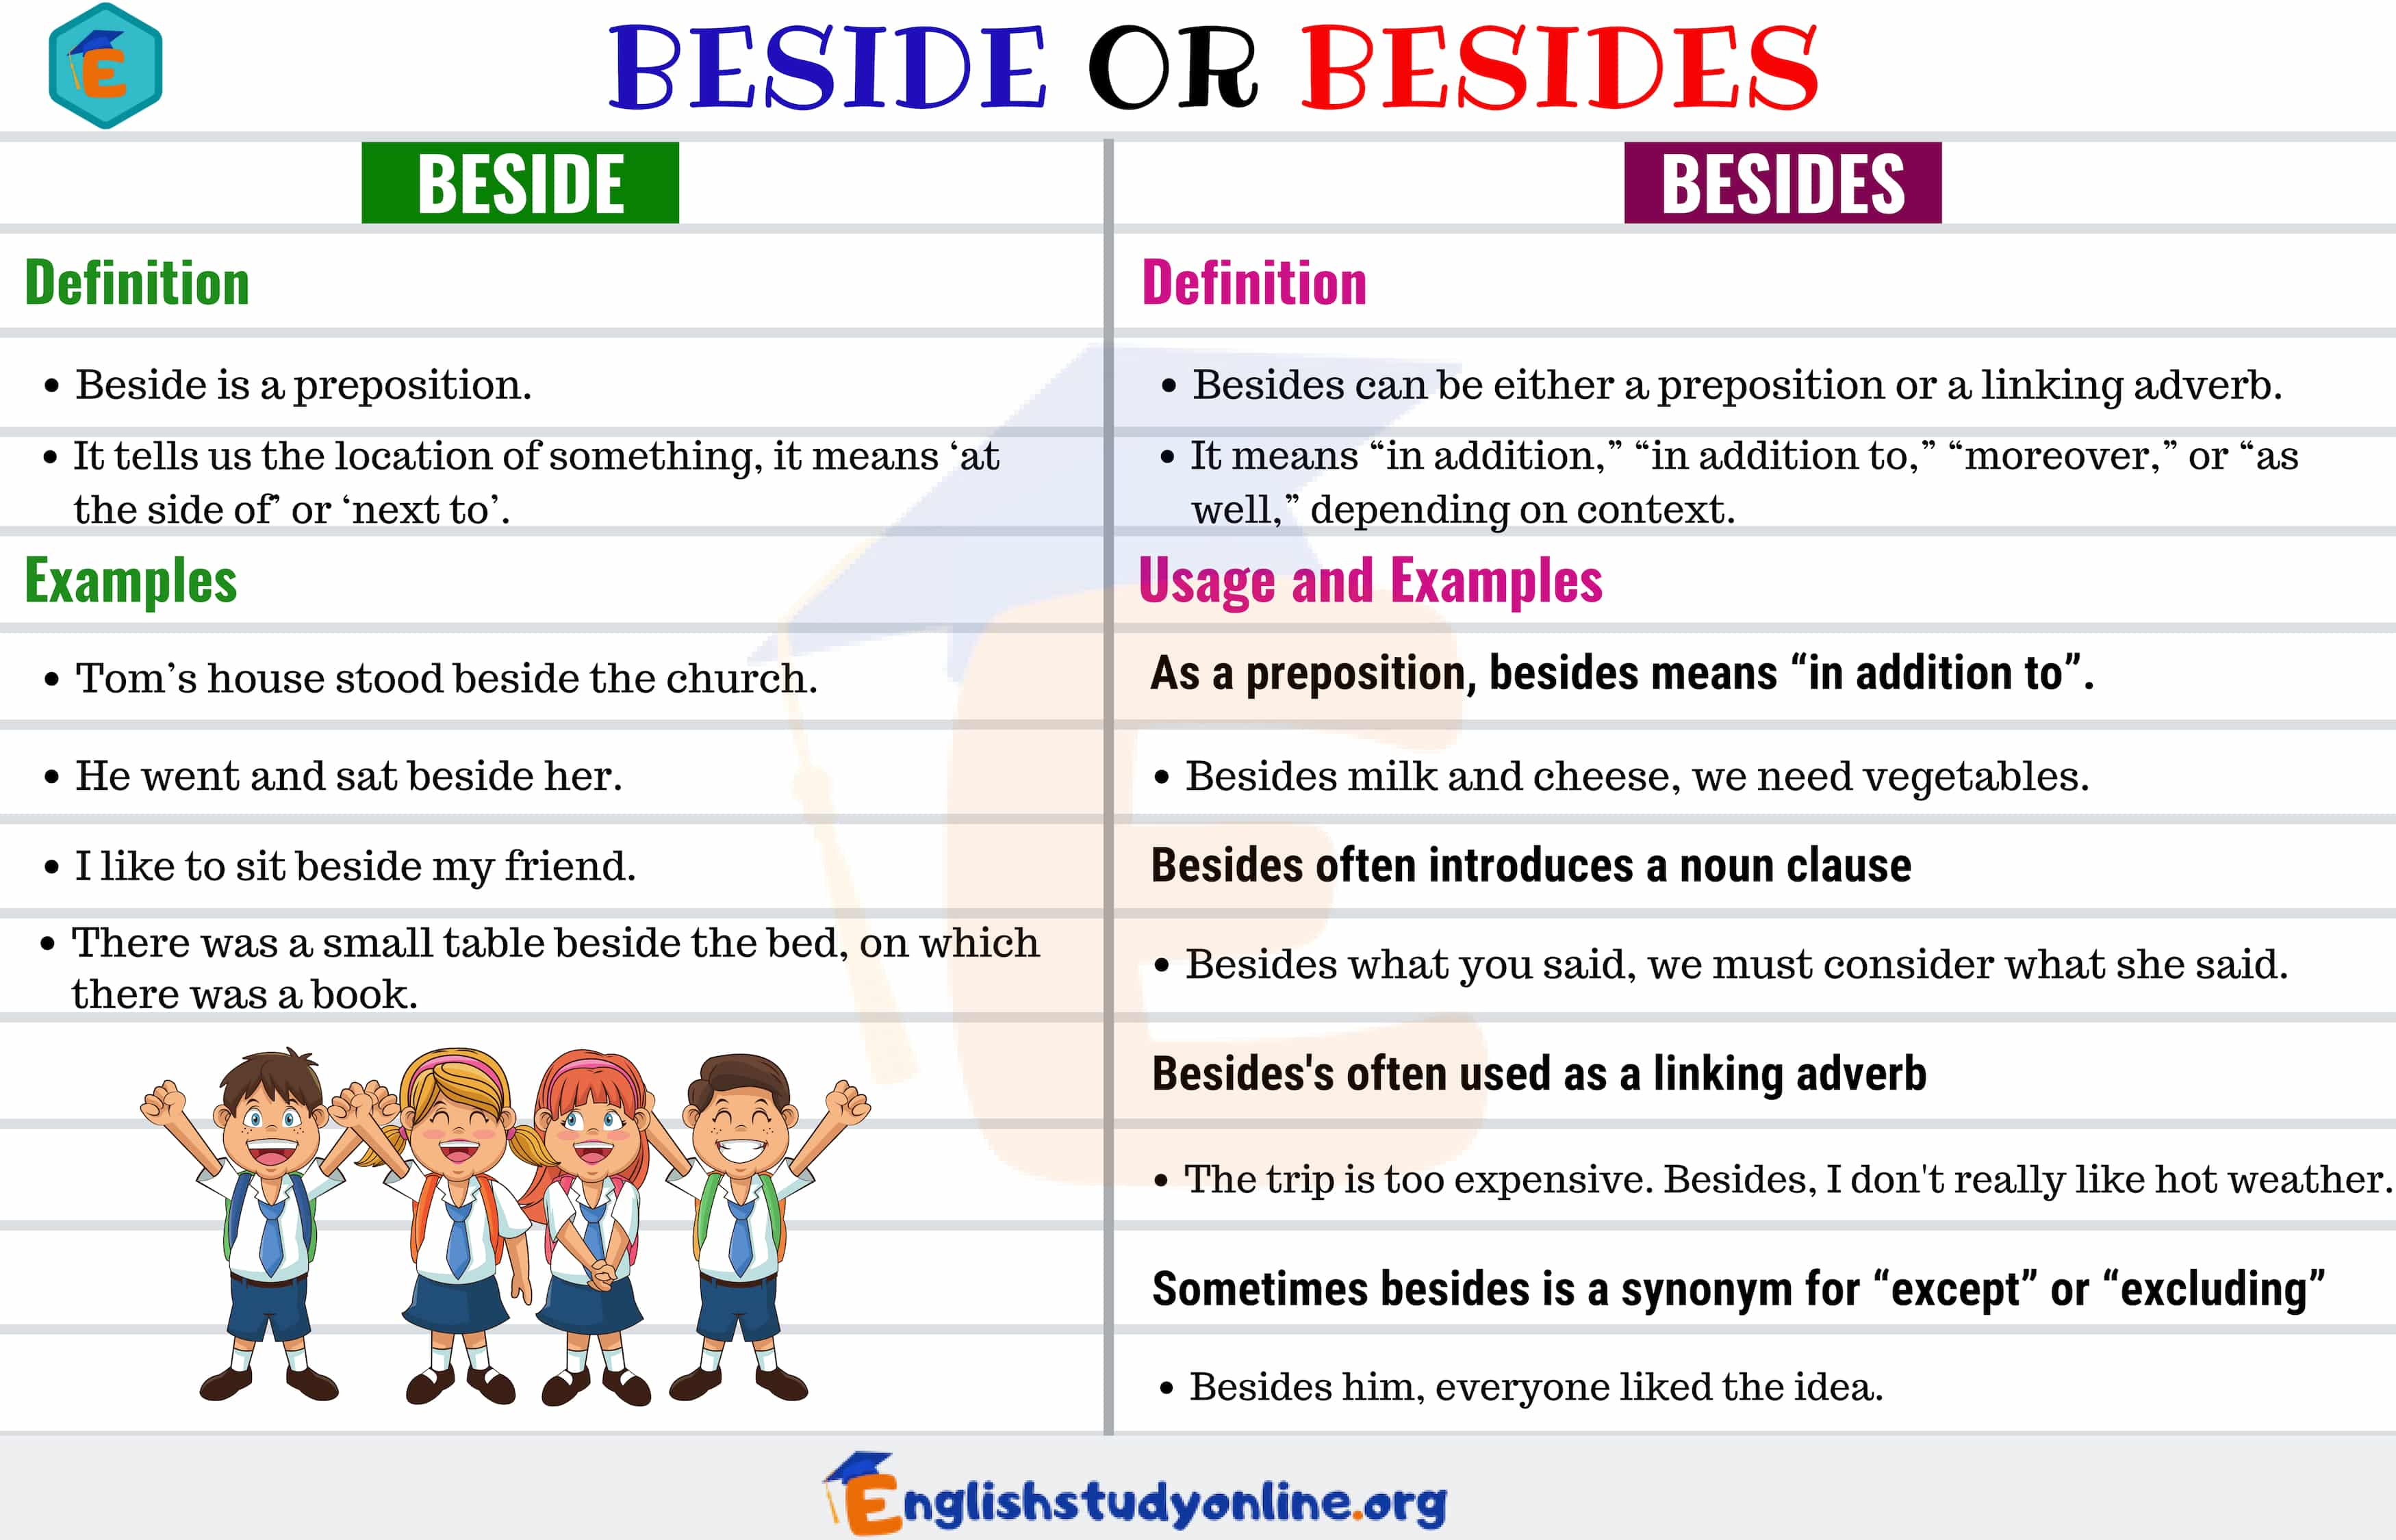 Beside or Besides